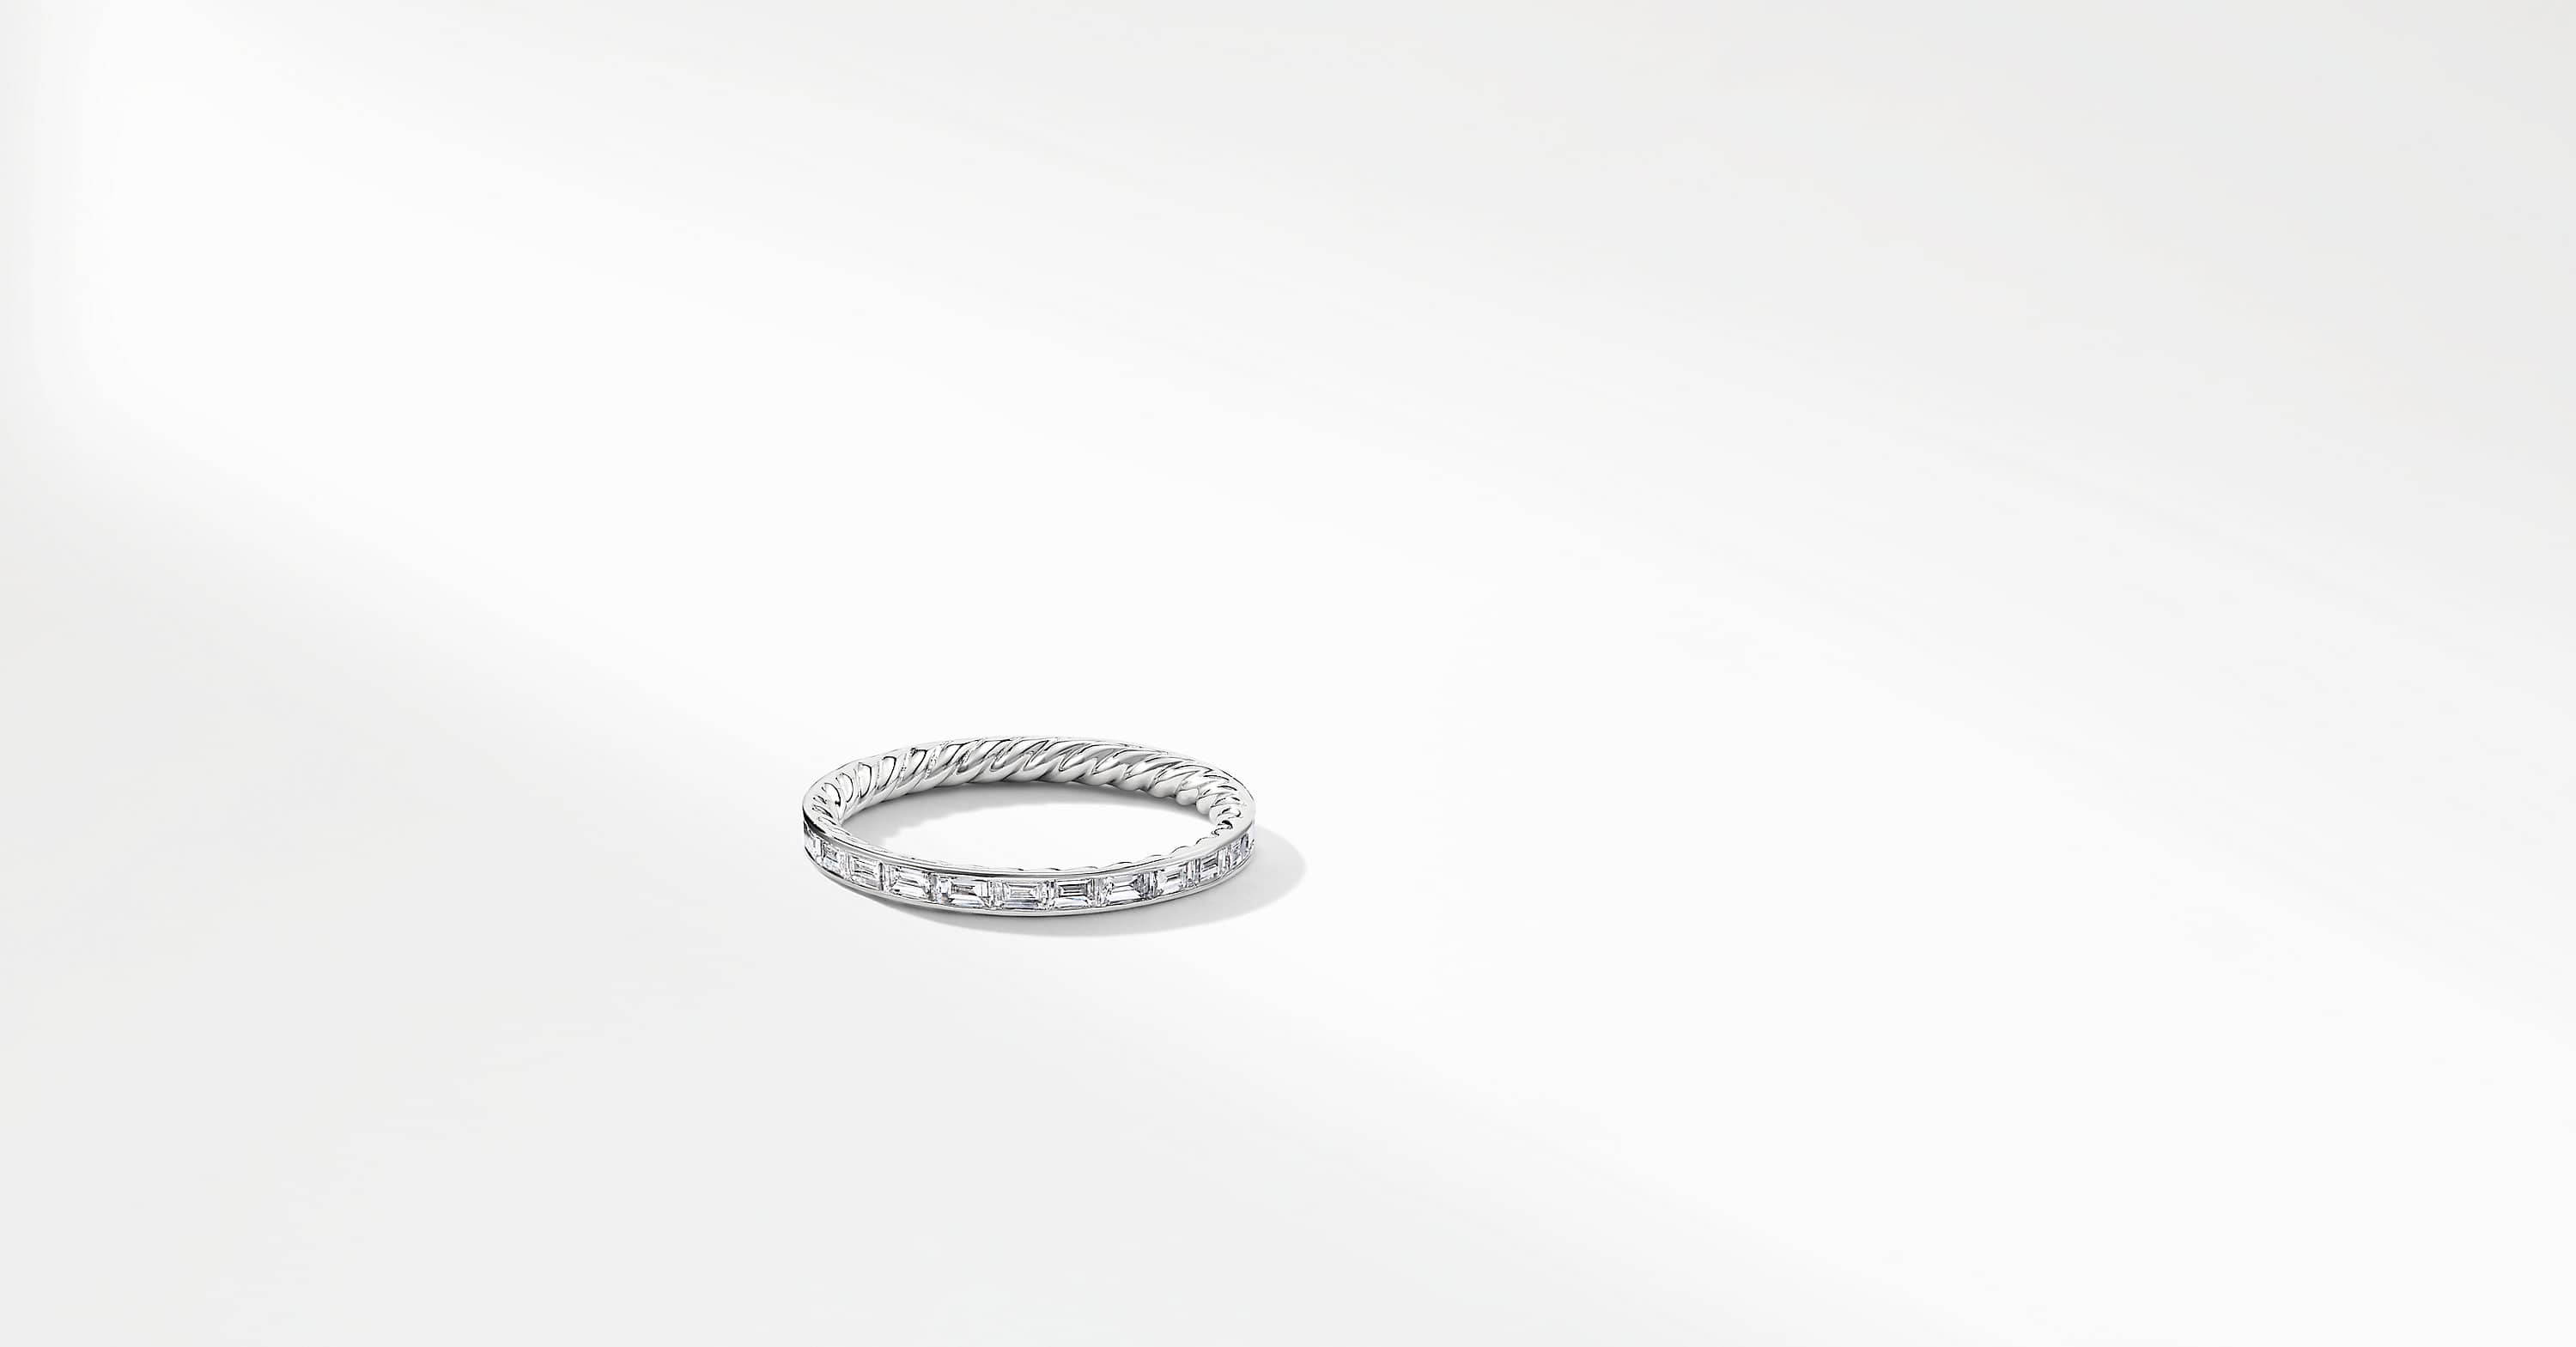 DY Wisteria Eternity Wedding Band with Diamonds in Platinum